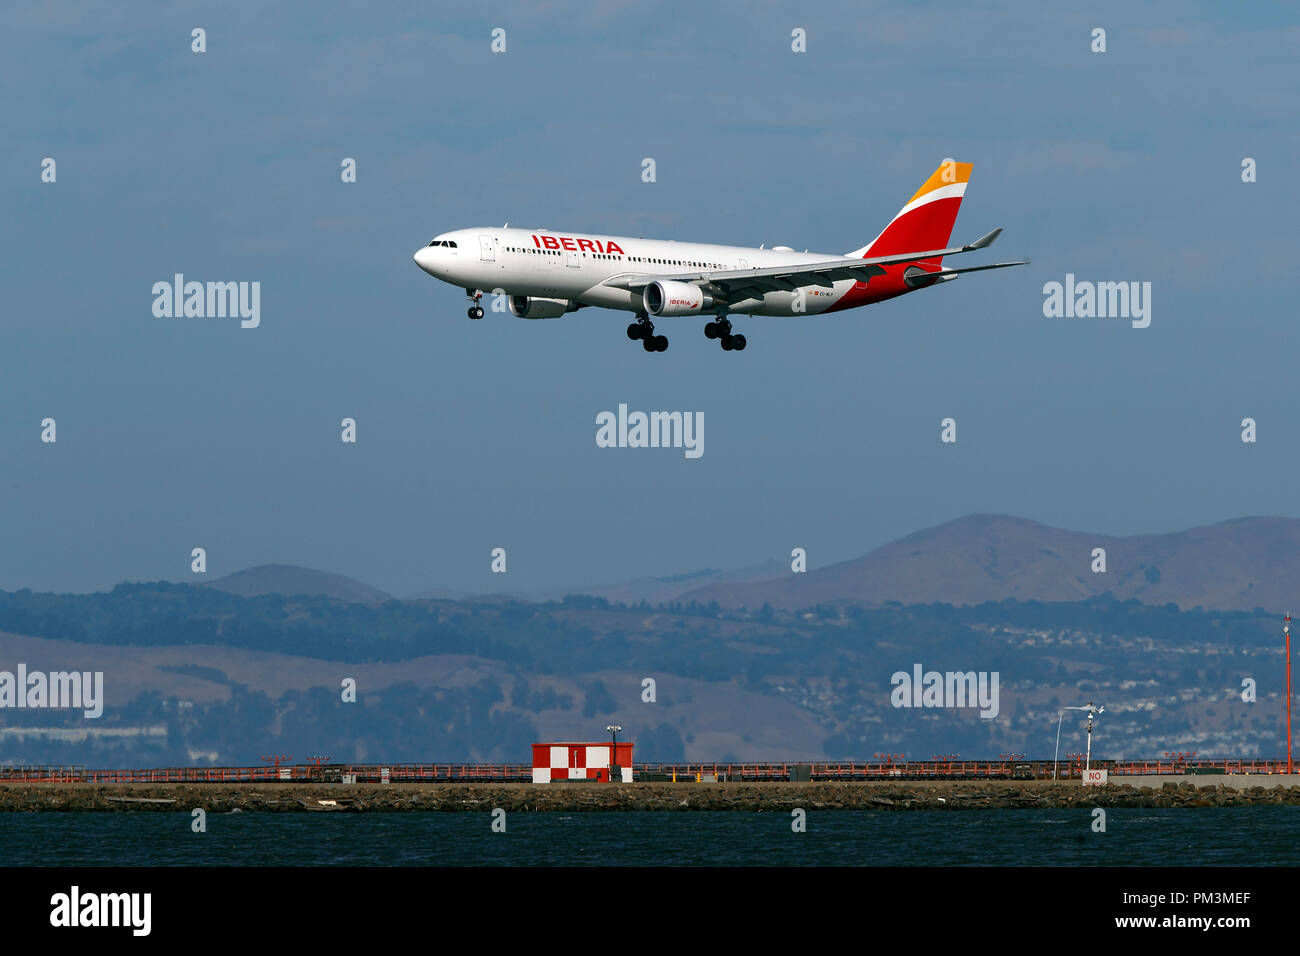 Airbus A330-202 (EC-MLP) operated by Iberia landing at San Francisco International Airport (KSFO), San Francisco, California, United States of America - Stock Image